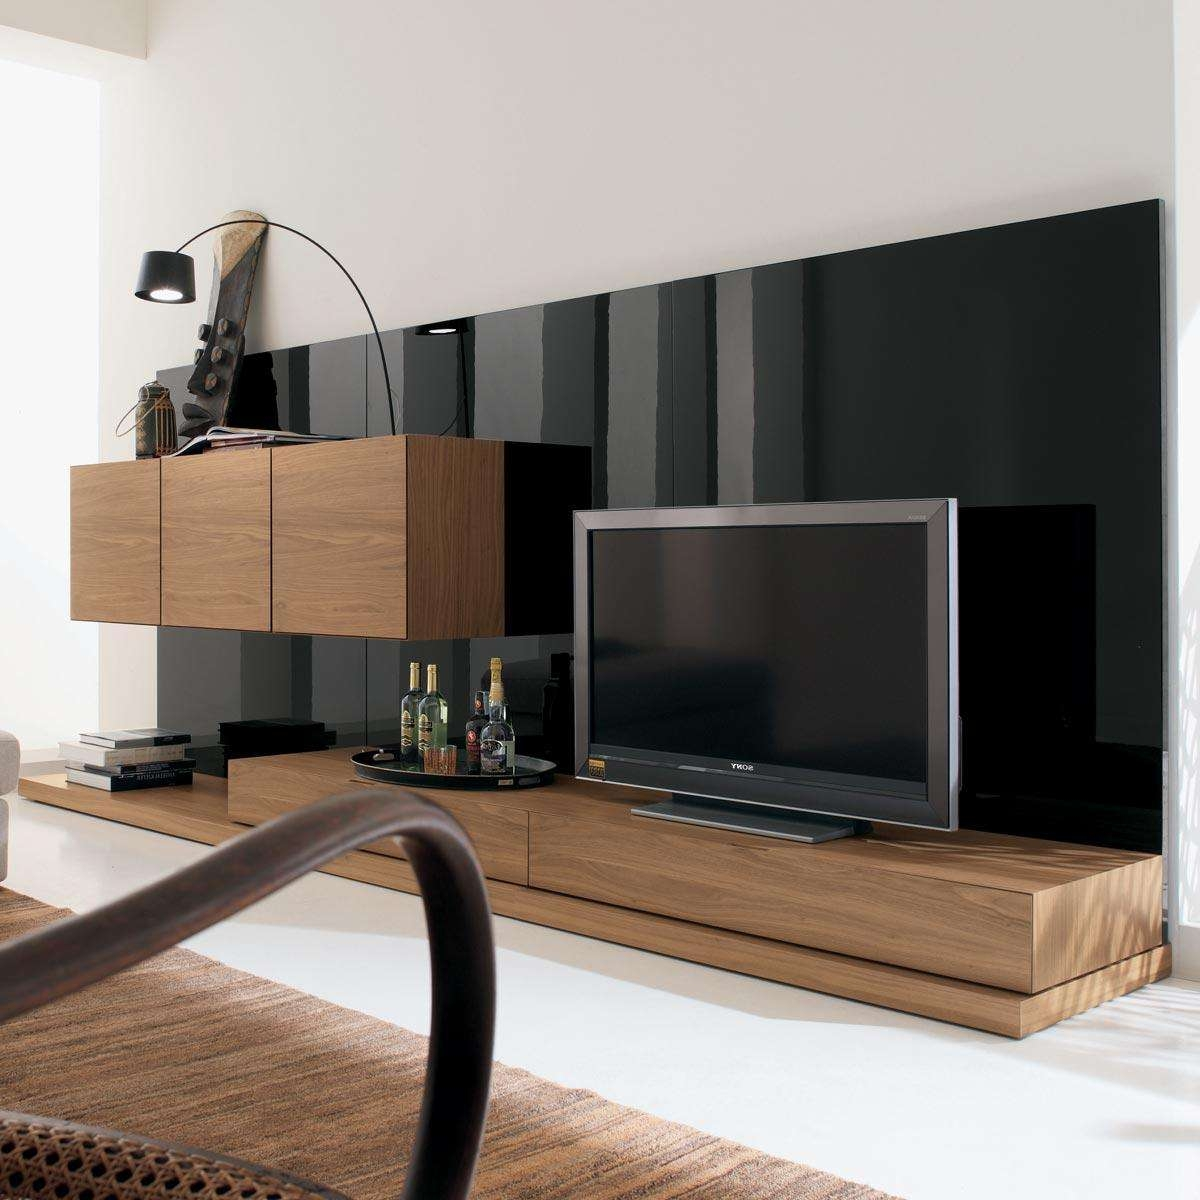 Modern Nature Wood Big Screen Tv Stand Wall Mounted Living Room Within Modern Tv Cabinets Designs (View 11 of 20)